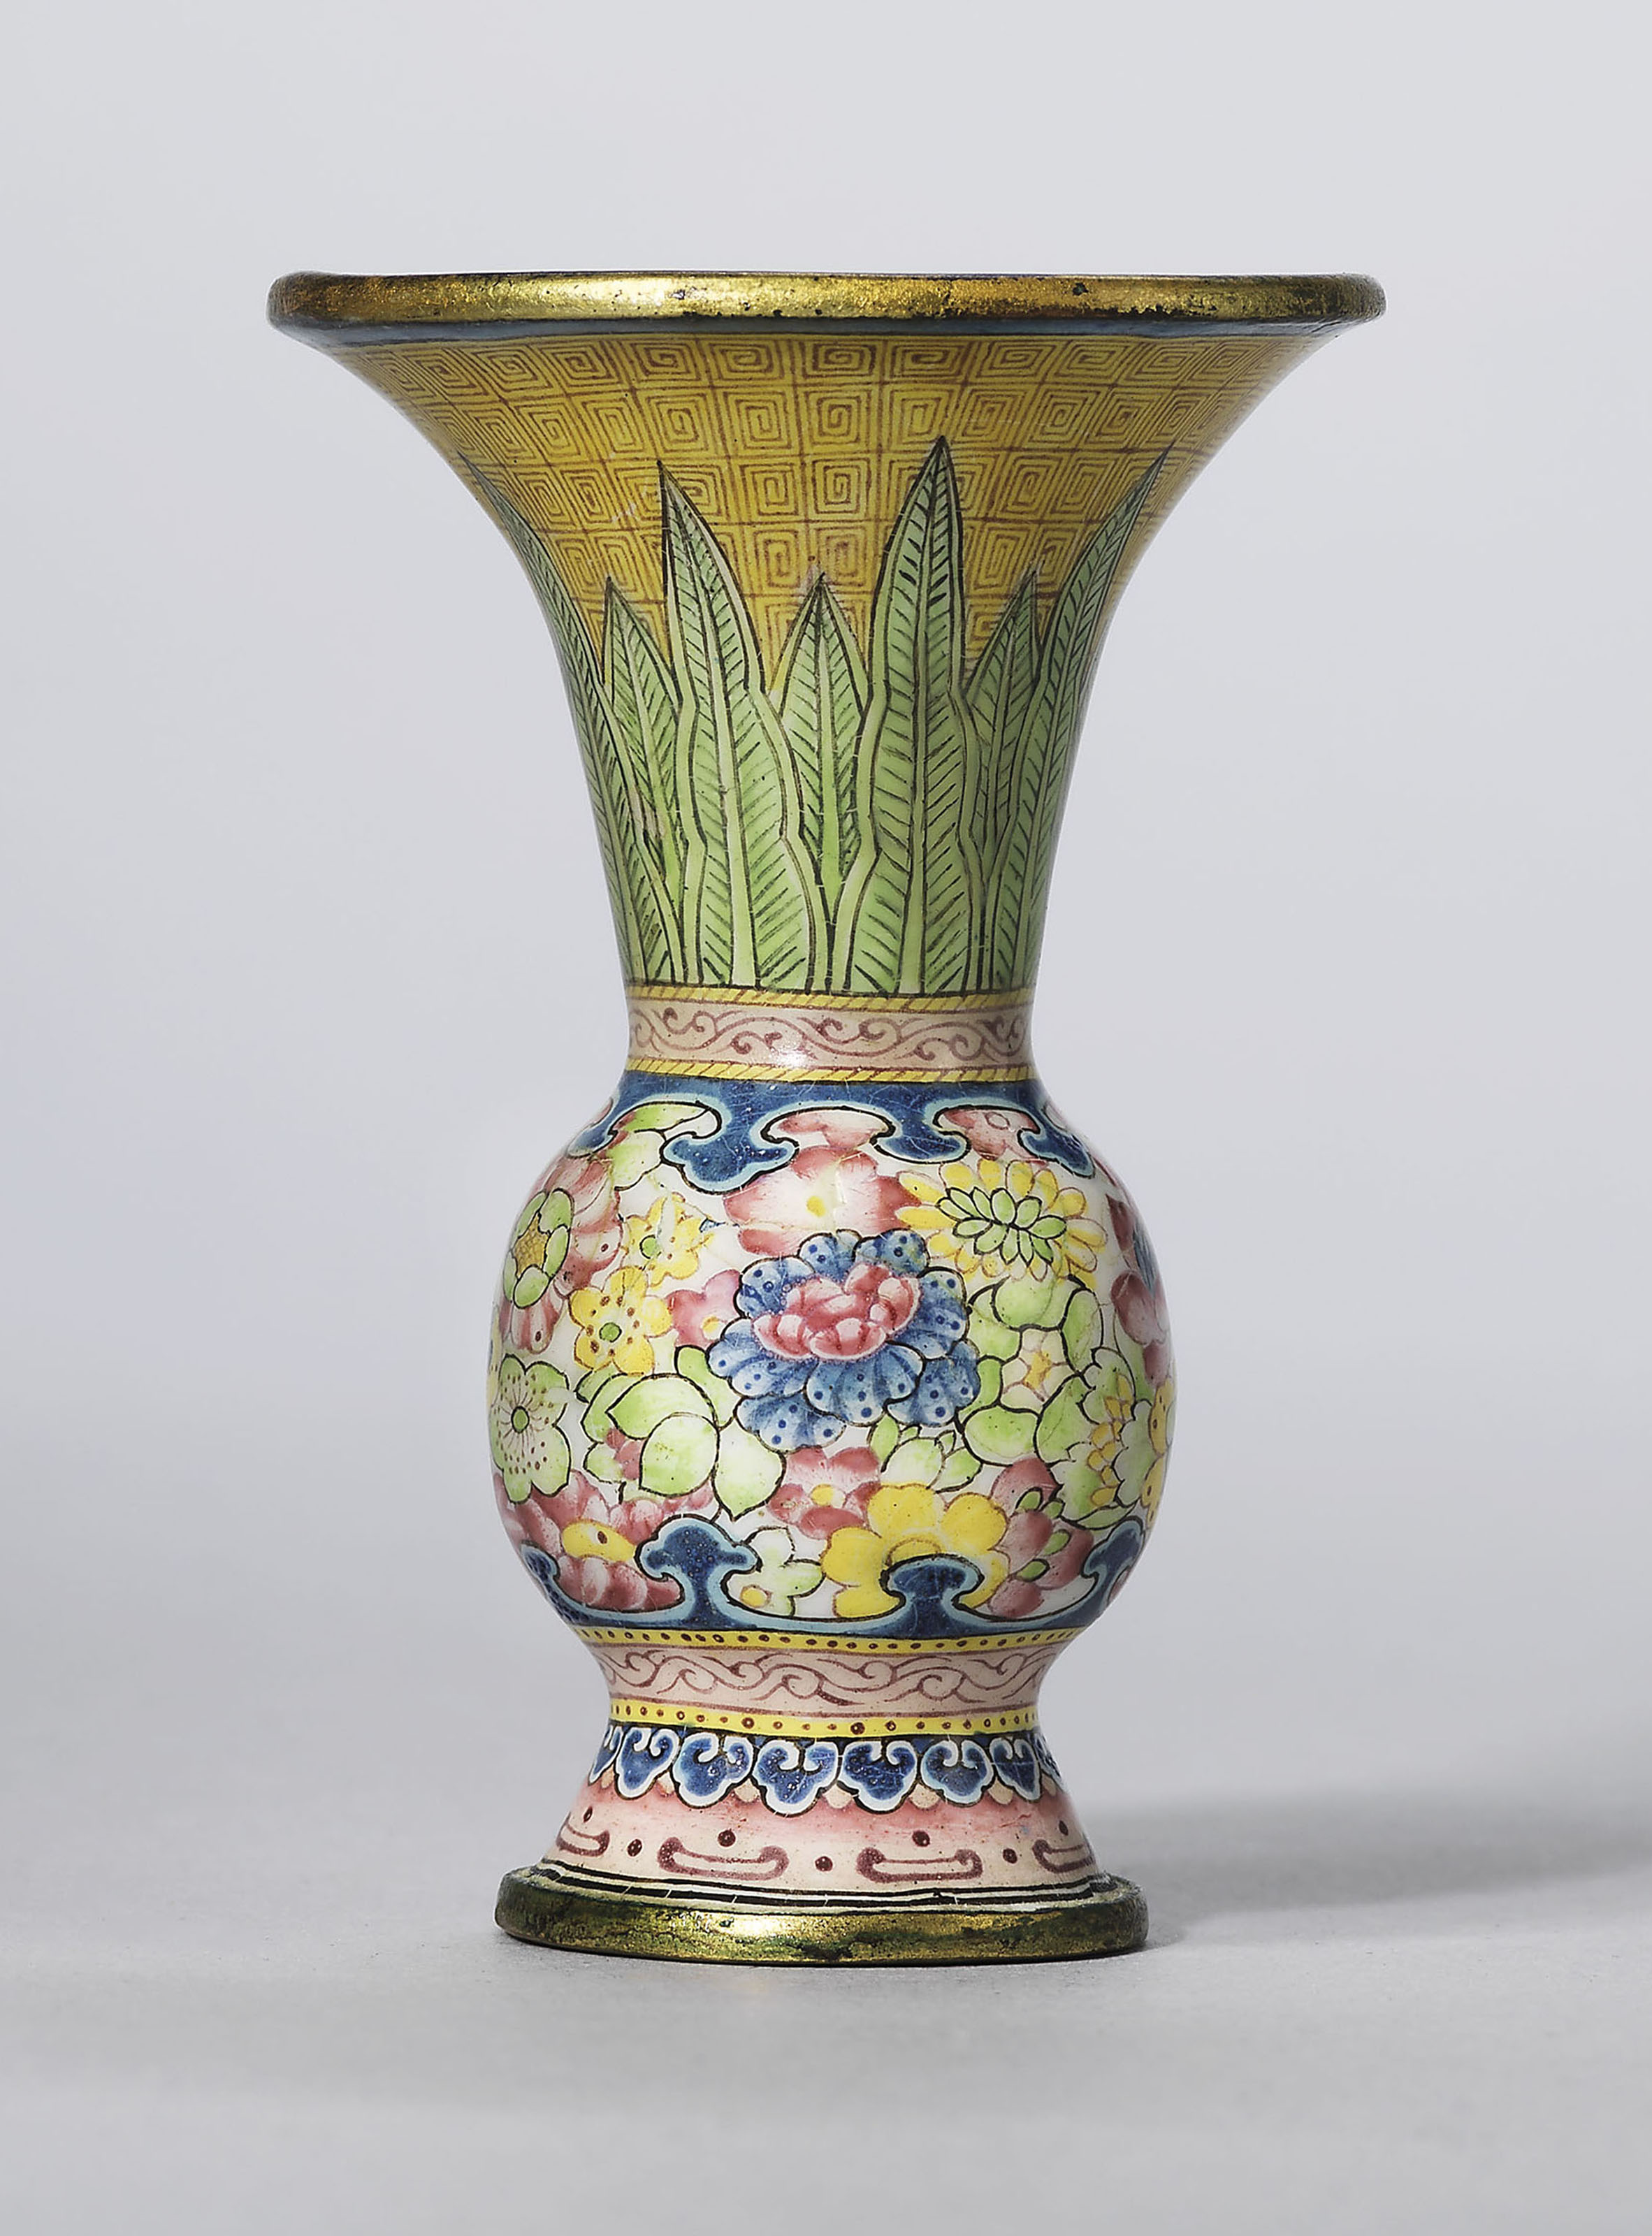 A guide to the symbolism of flowers on Chinese ceramics